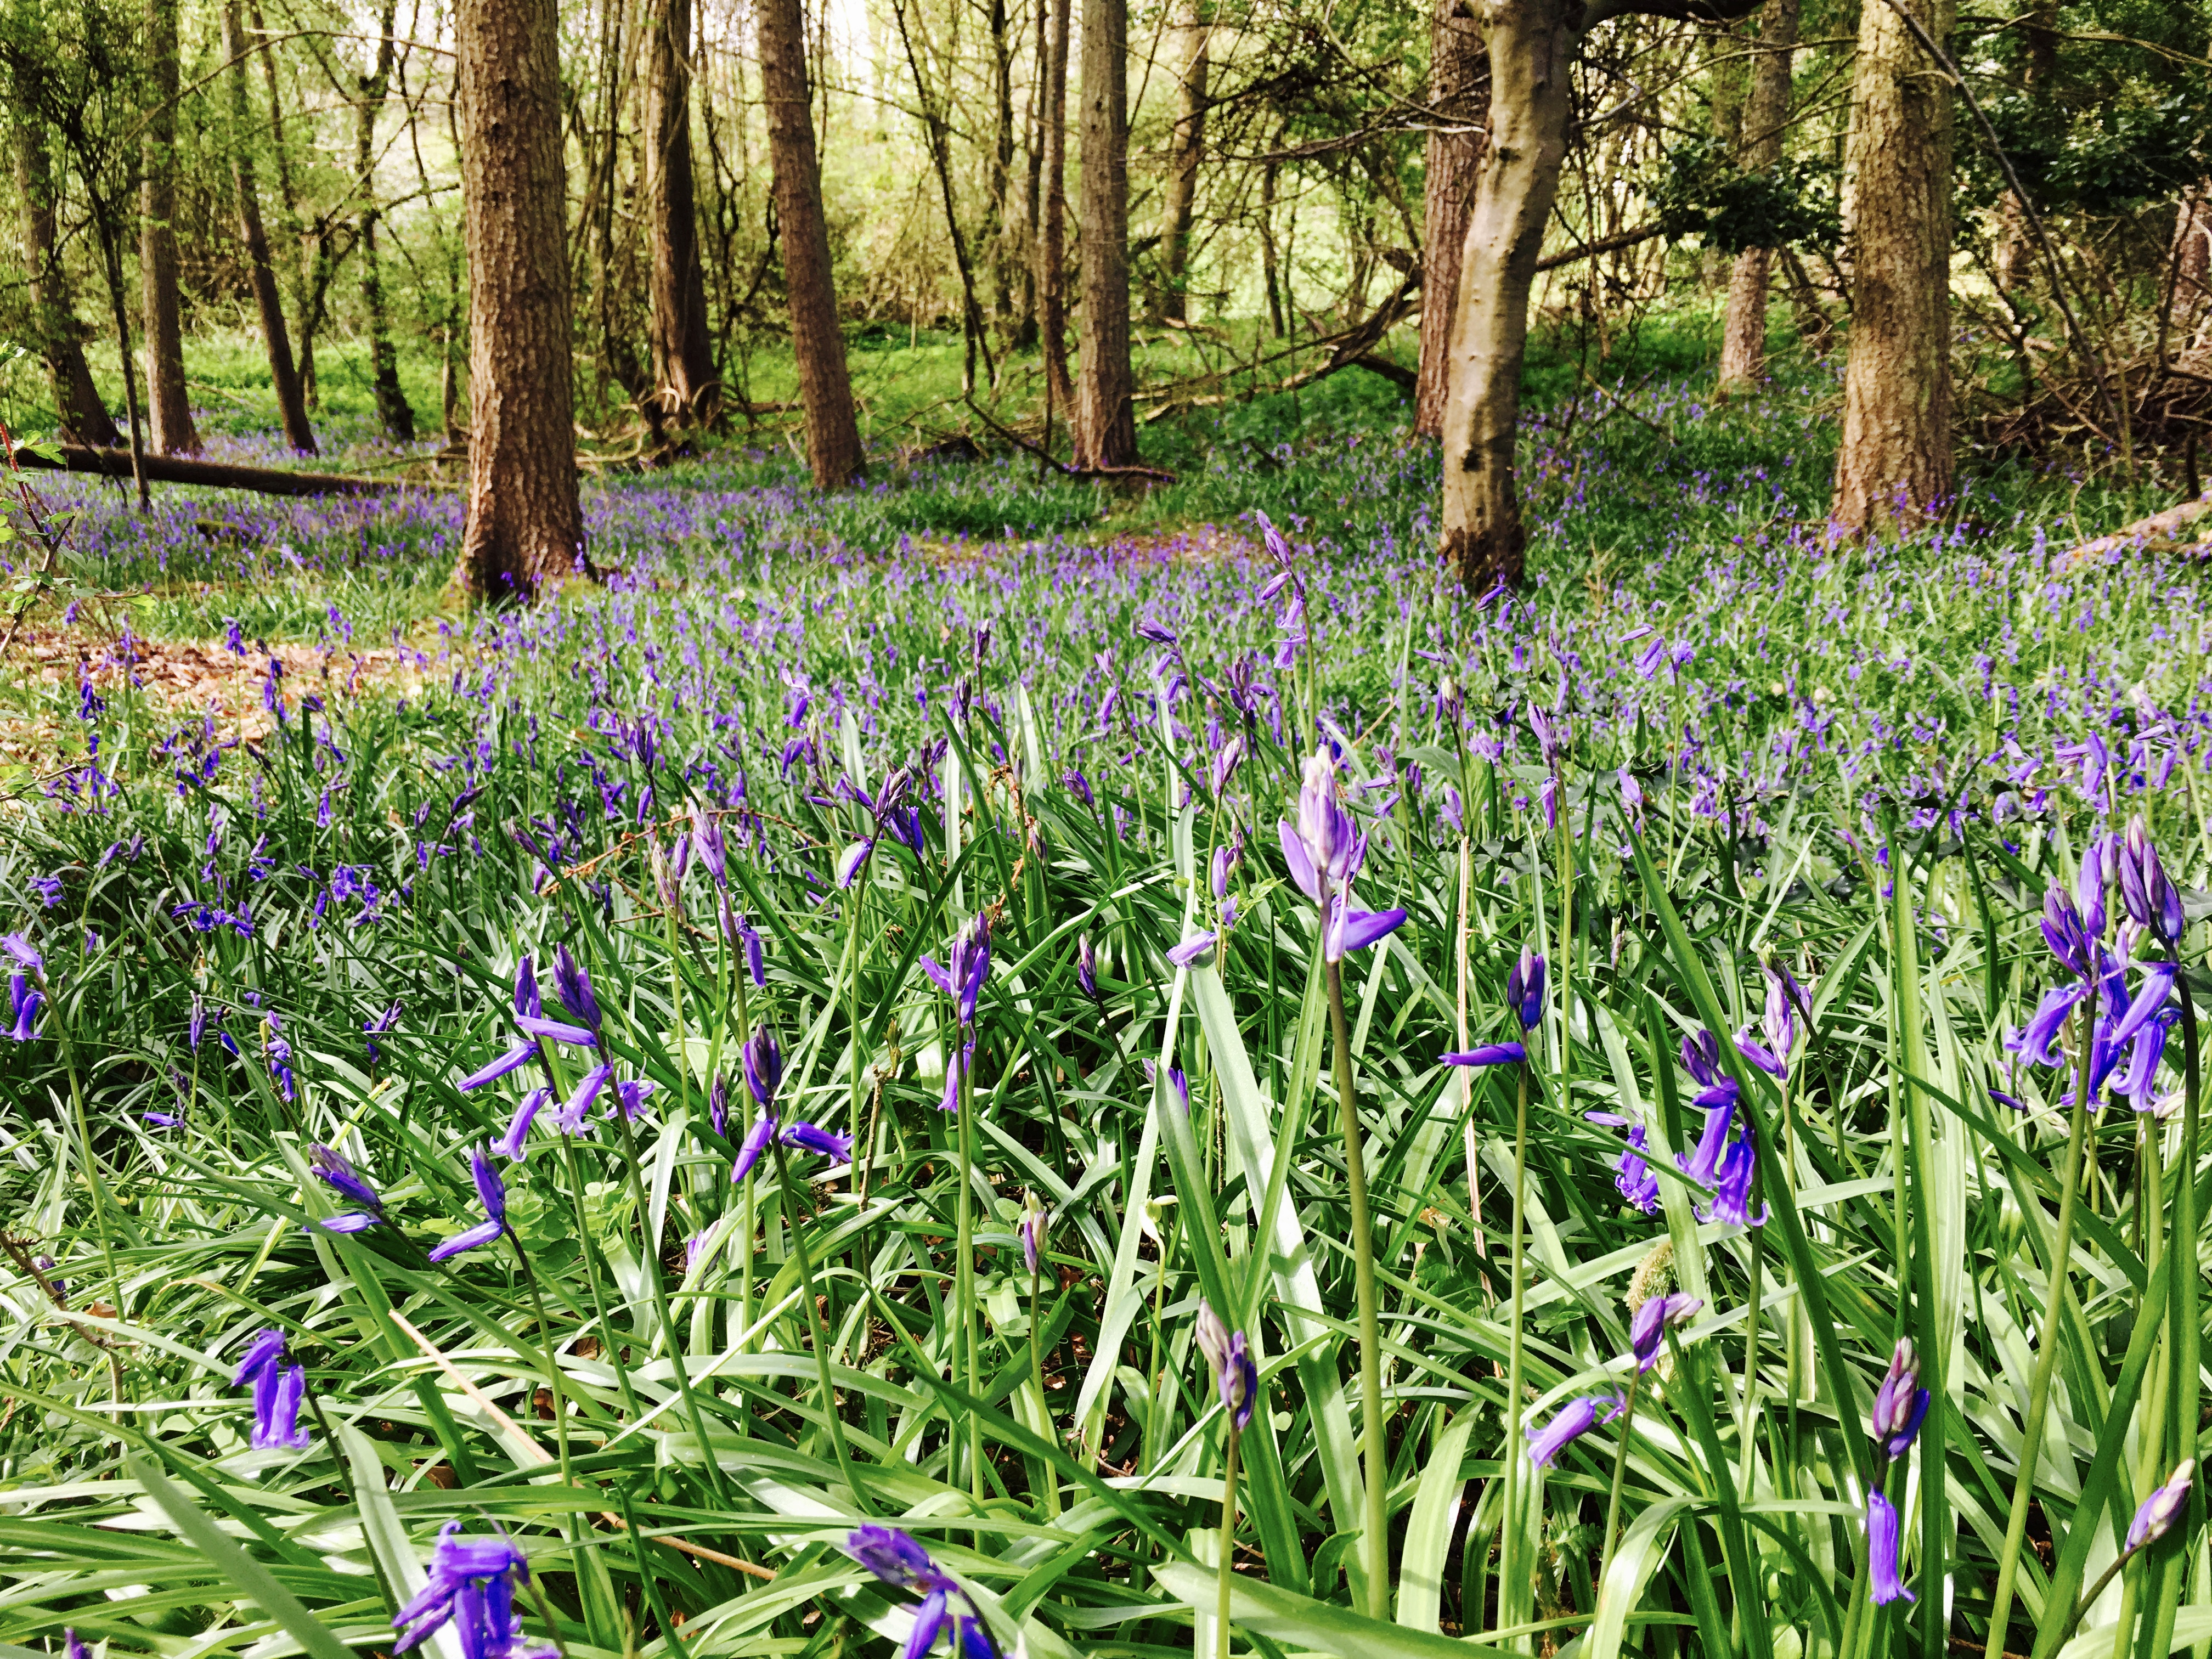 Bluebells in a pine woodland near Nympsfield, Gloucestershire.